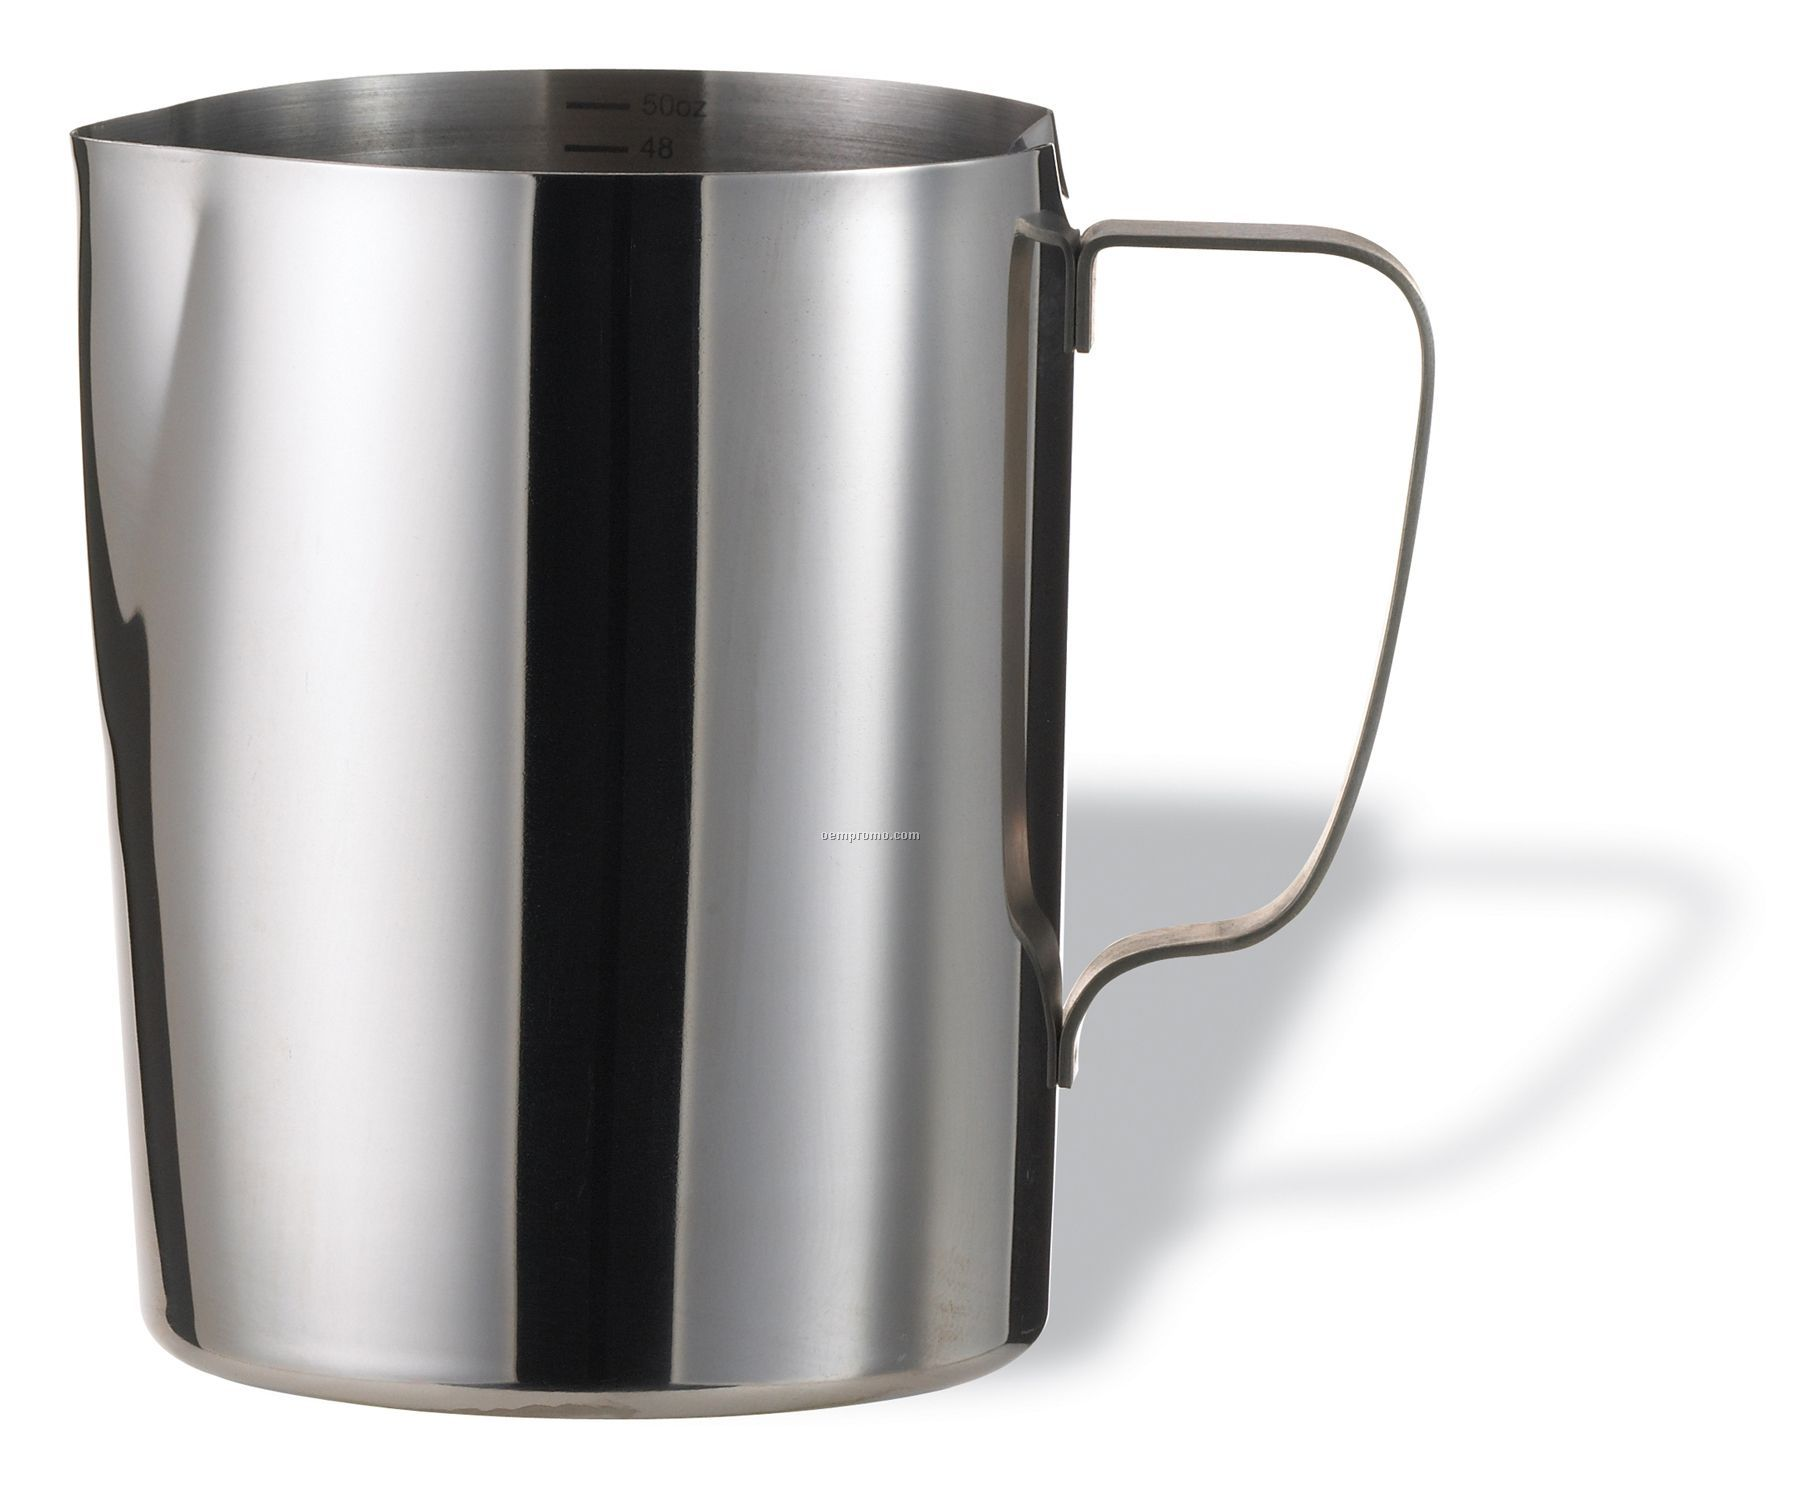 50 Oz. Stainless Steel Frothing Pitcher